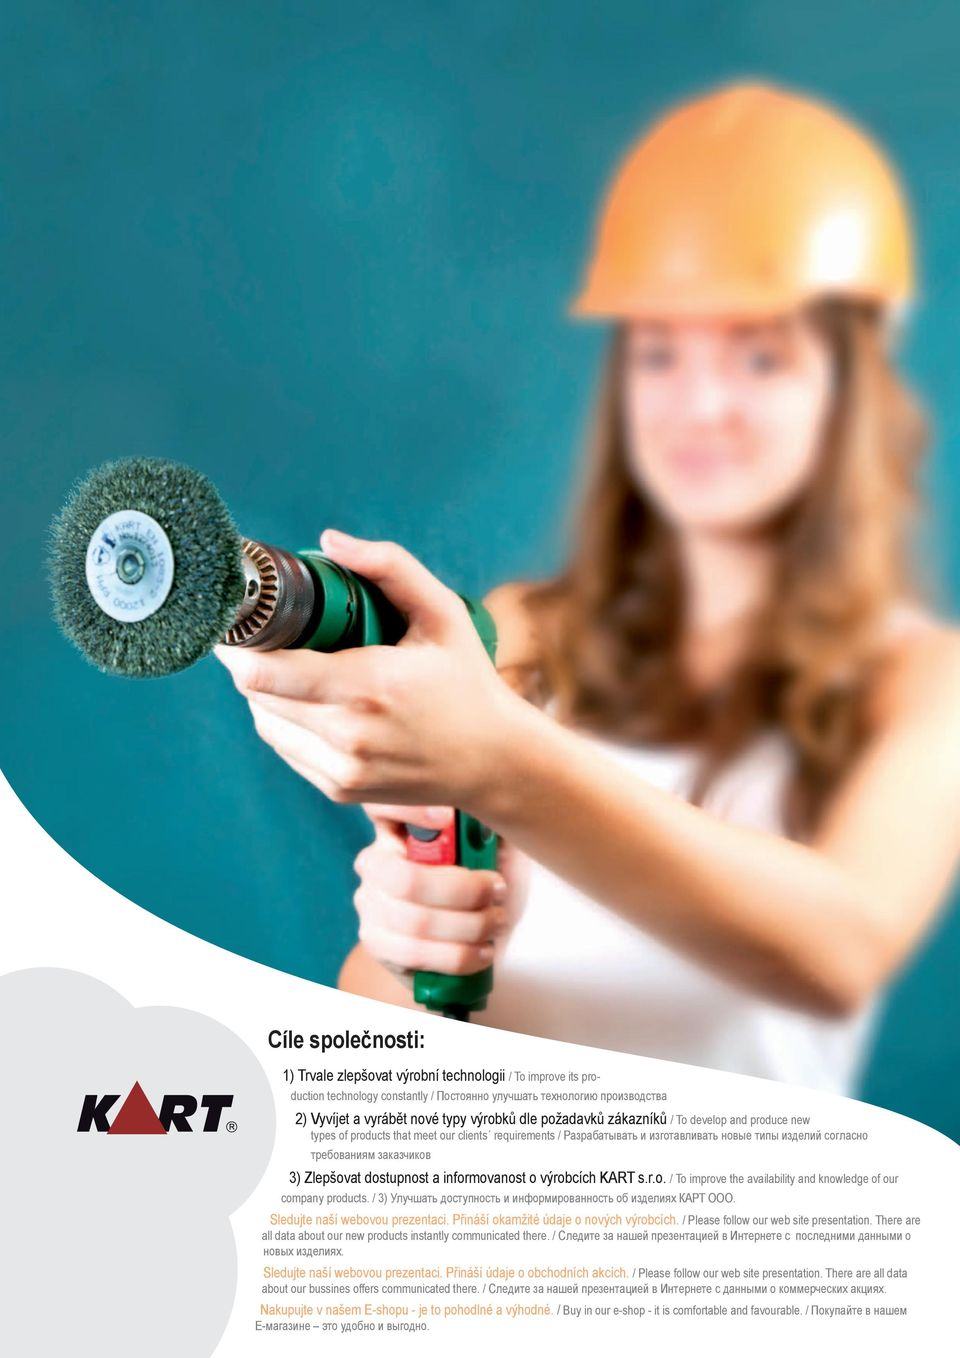 dostupnost a informovanost o výrobcích KART s.r.o. / To improve the availability and knowledge of our company products. / 3) Улучшать доступность и информированность об изделиях КАРТ ООО.